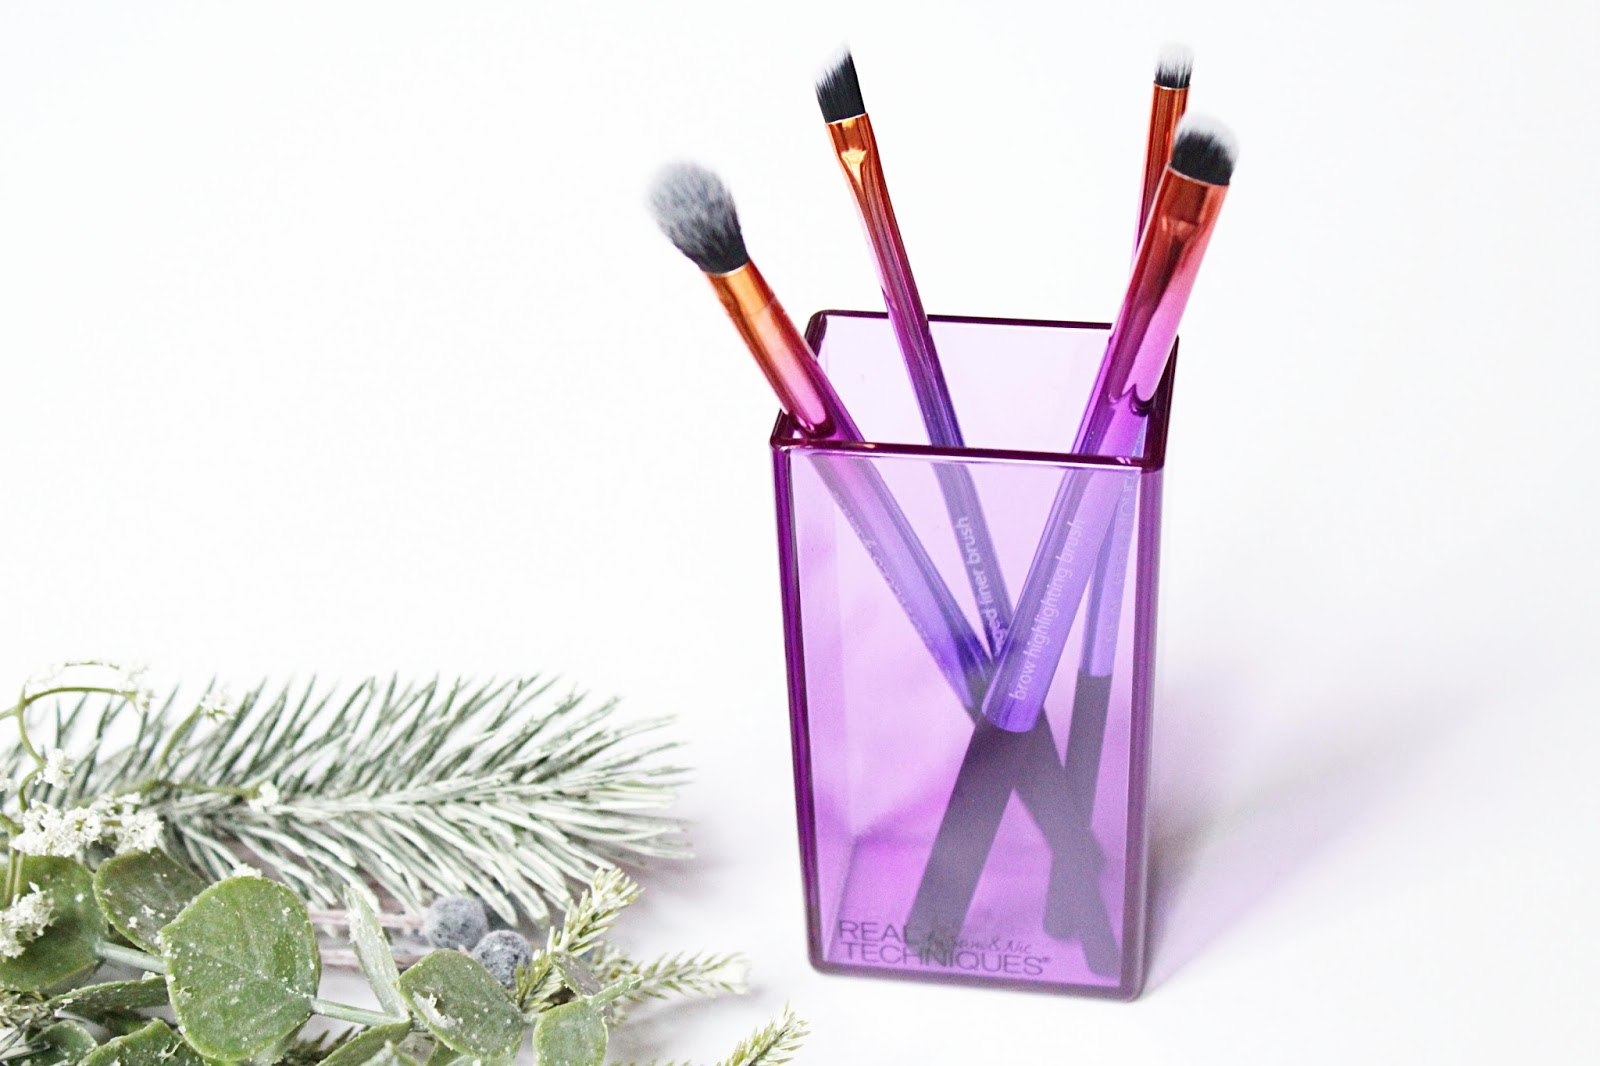 Real Techniques Christmas Brush Sets